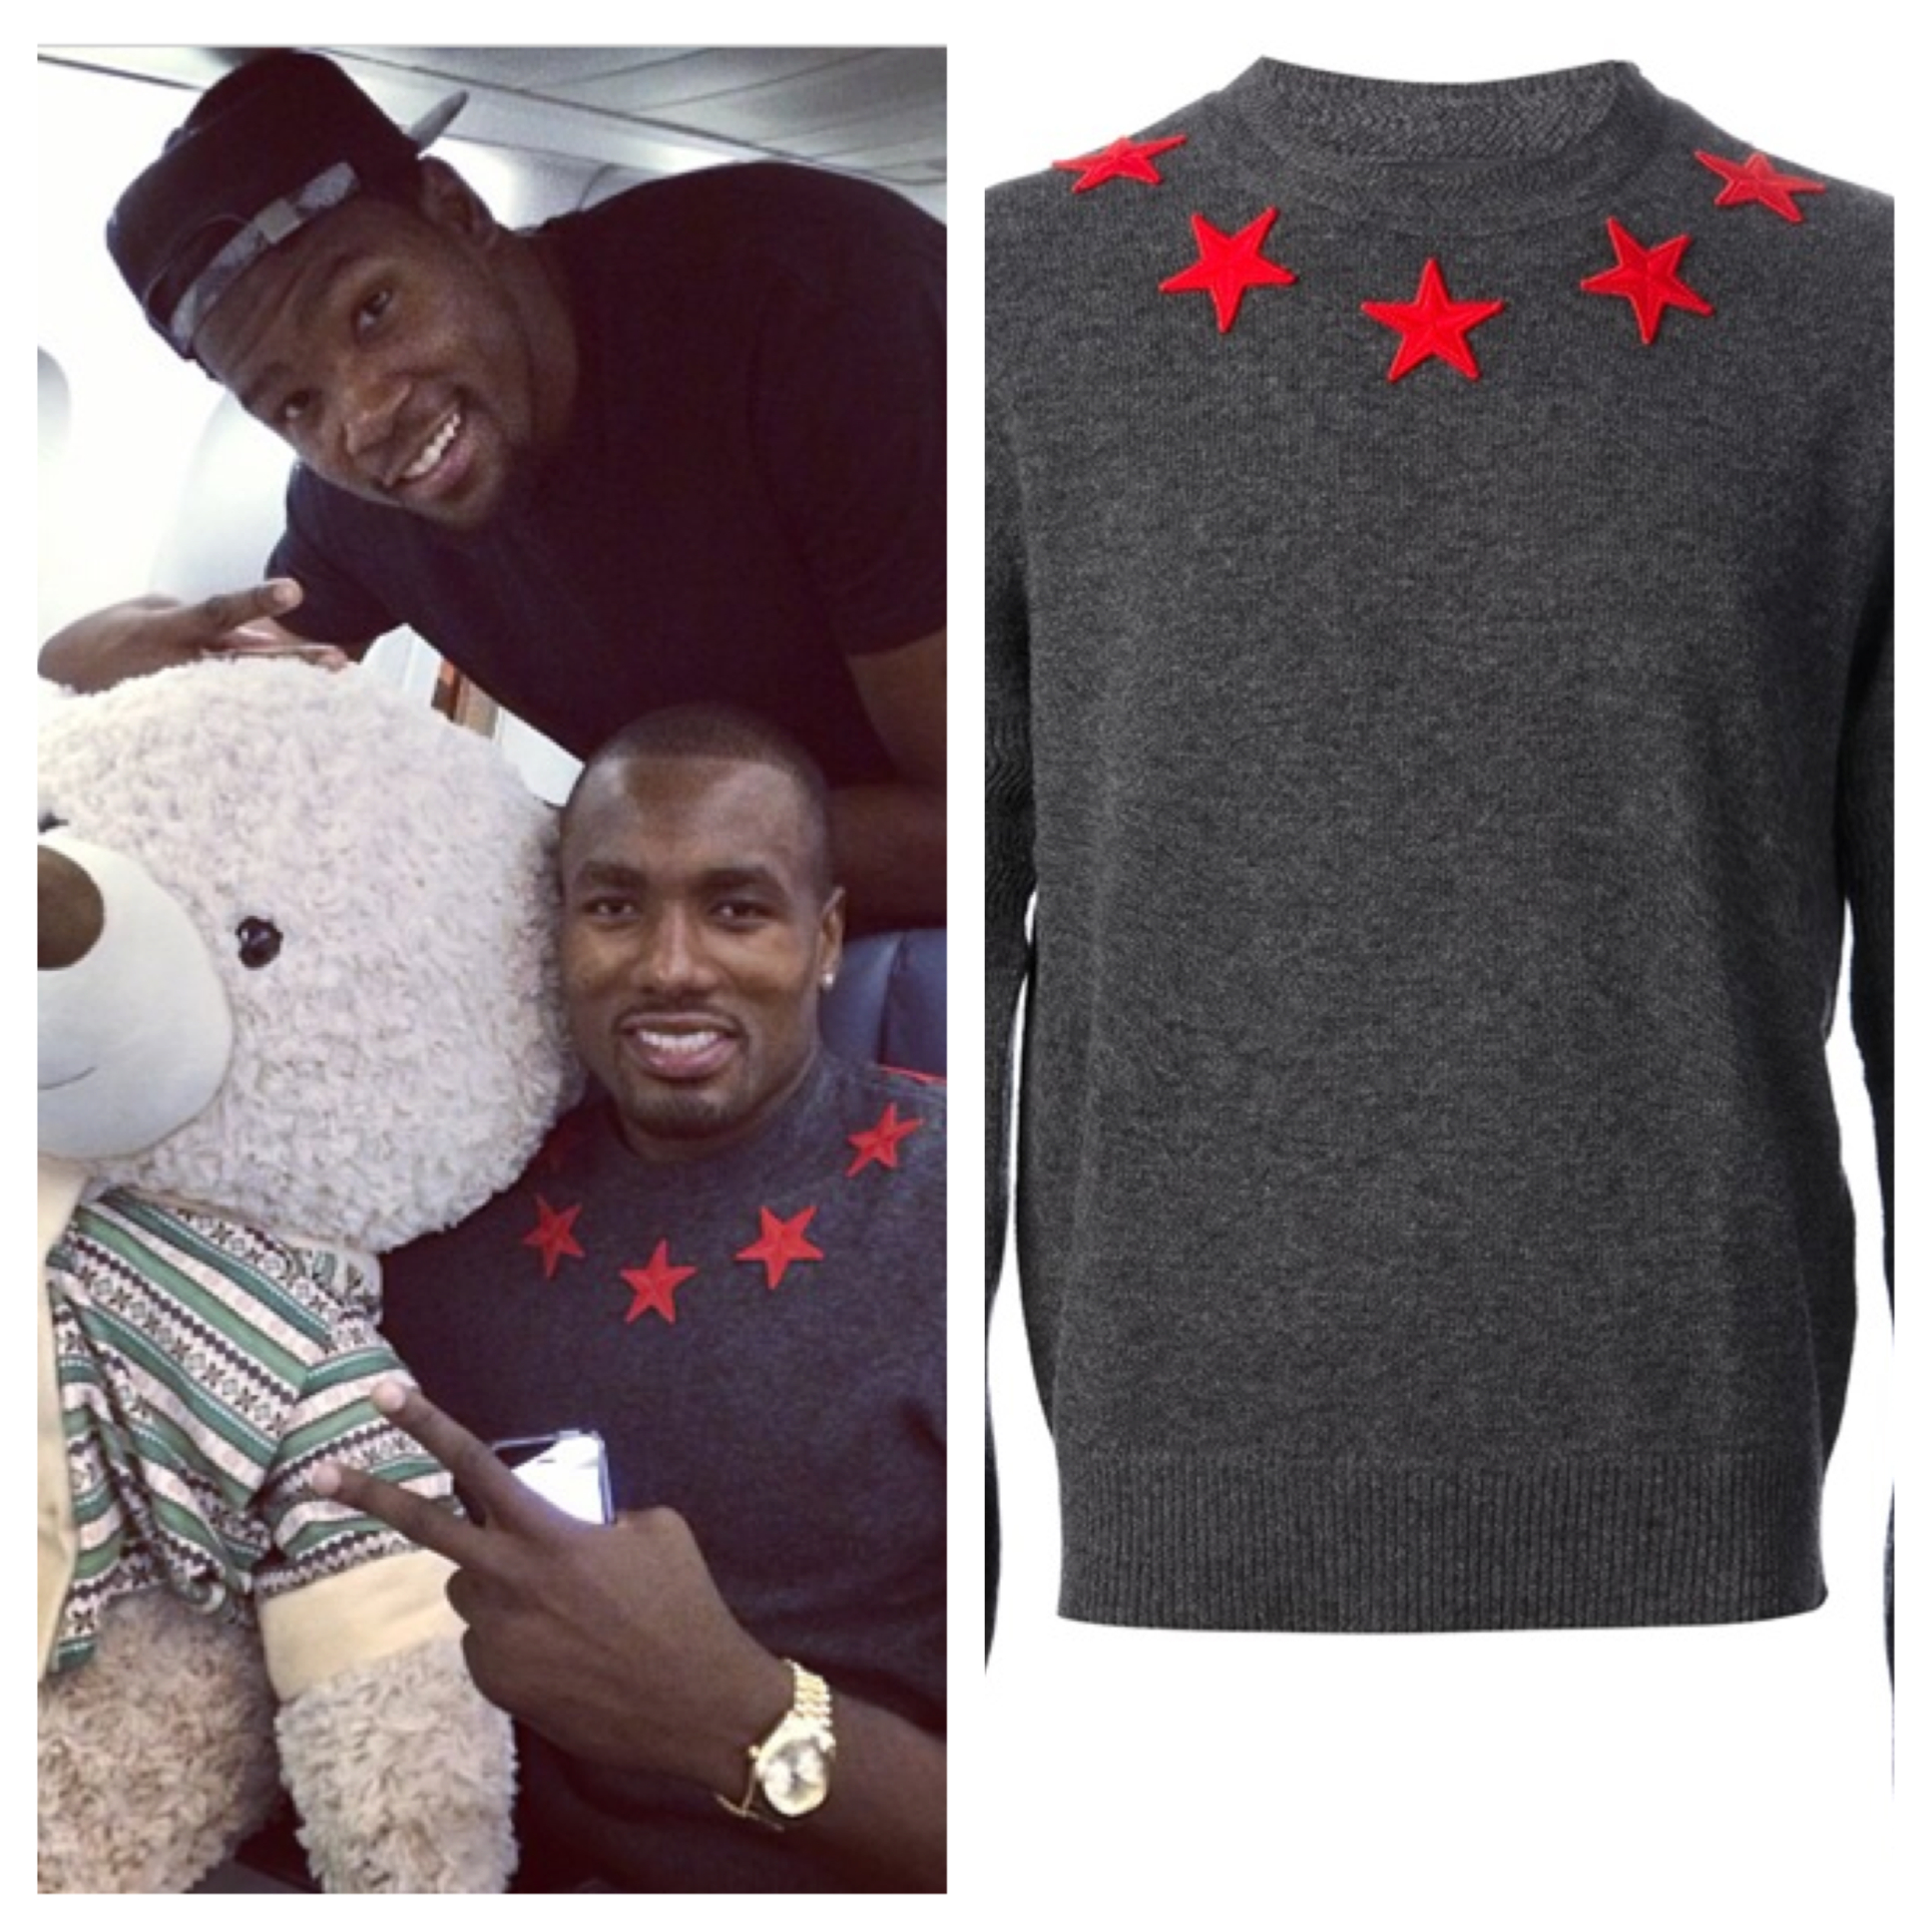 Serge-Ibaka-Instagram-Givenchy-Stars-Wool-sweater-Embroidered-Stars-1